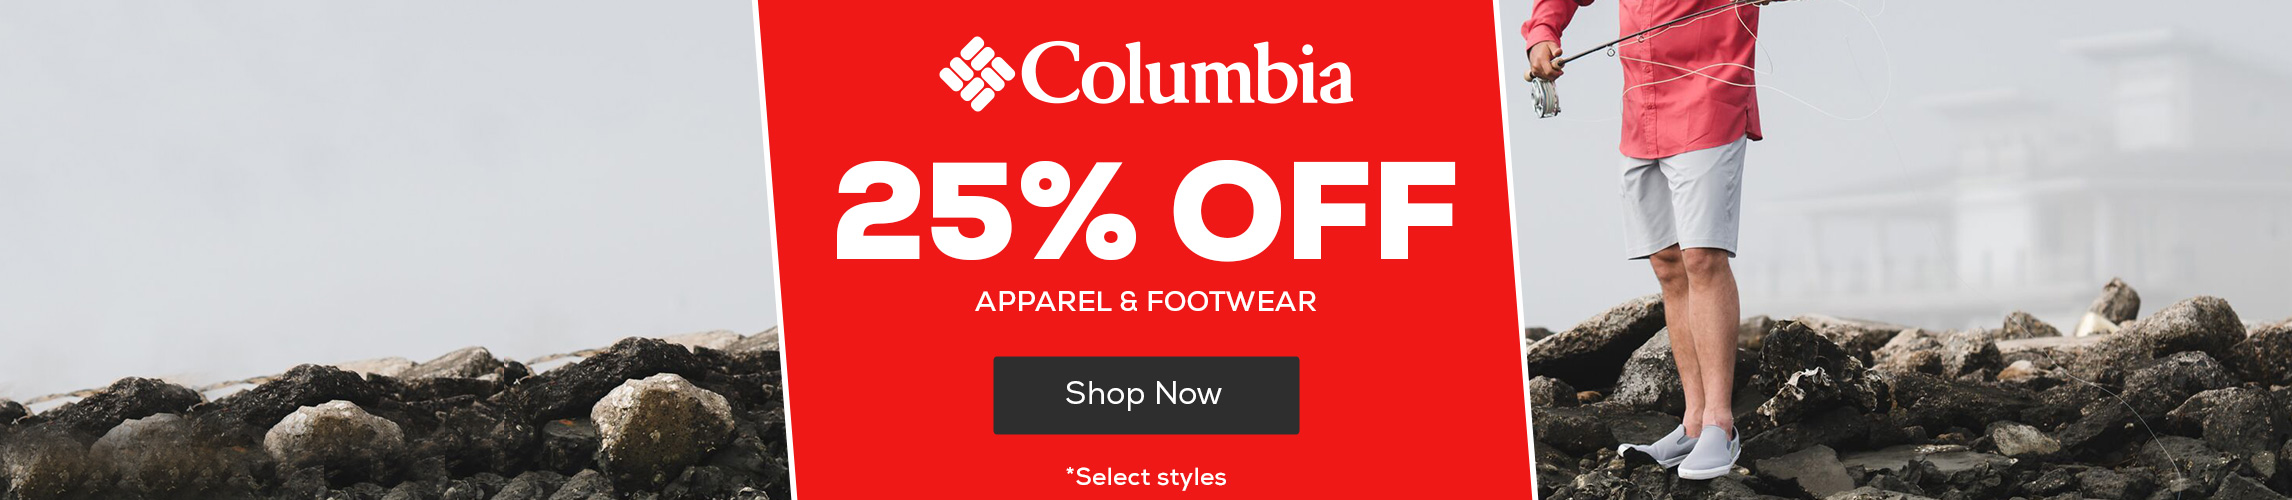 Columbia Apparel & Footwear 25% Off  *select styles